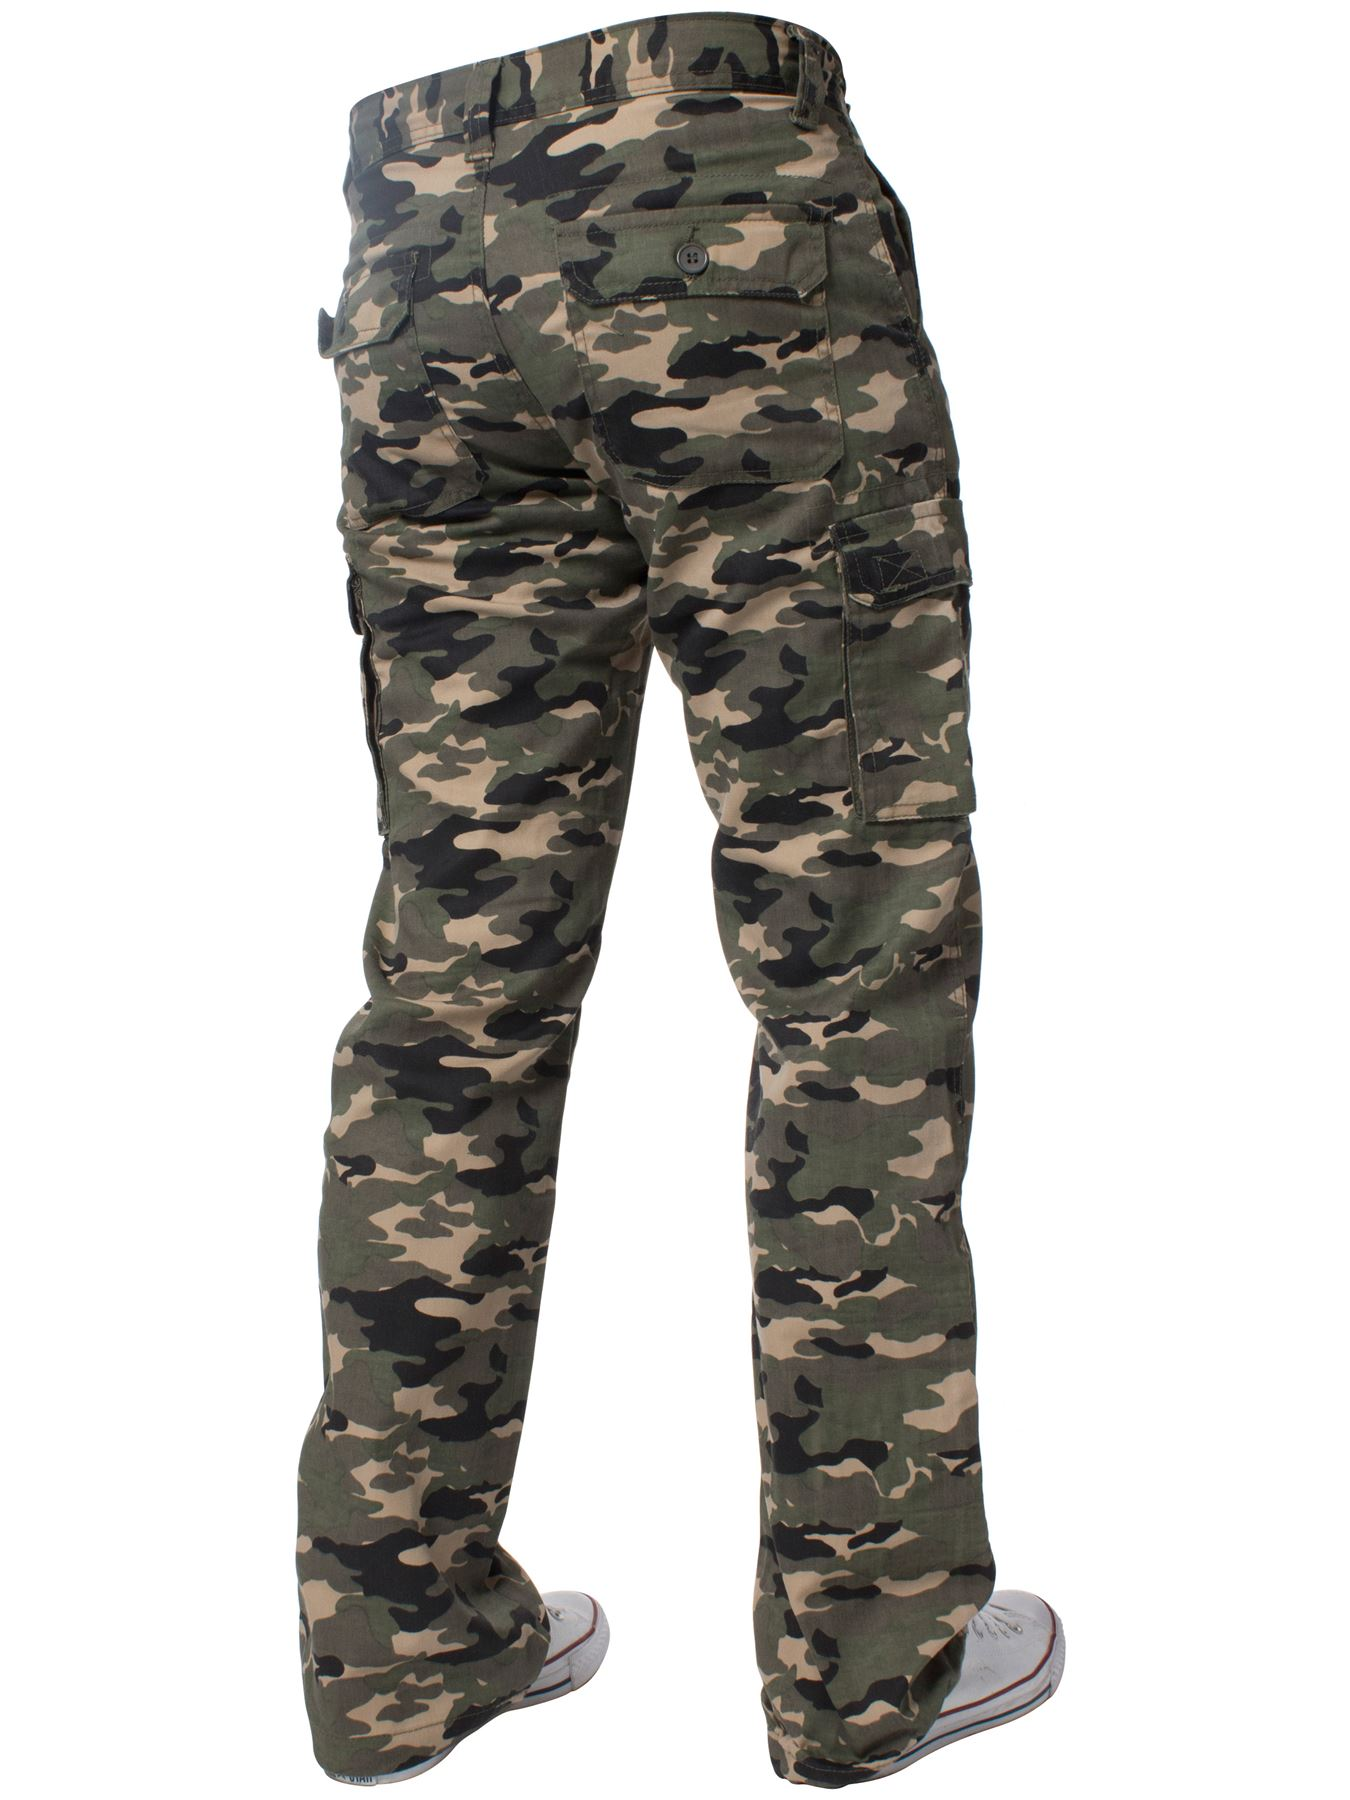 Kruze-Mens-Military-Combat-Trousers-Camouflage-Cargo-Camo-Army-Casual-Work-Pants miniatura 16